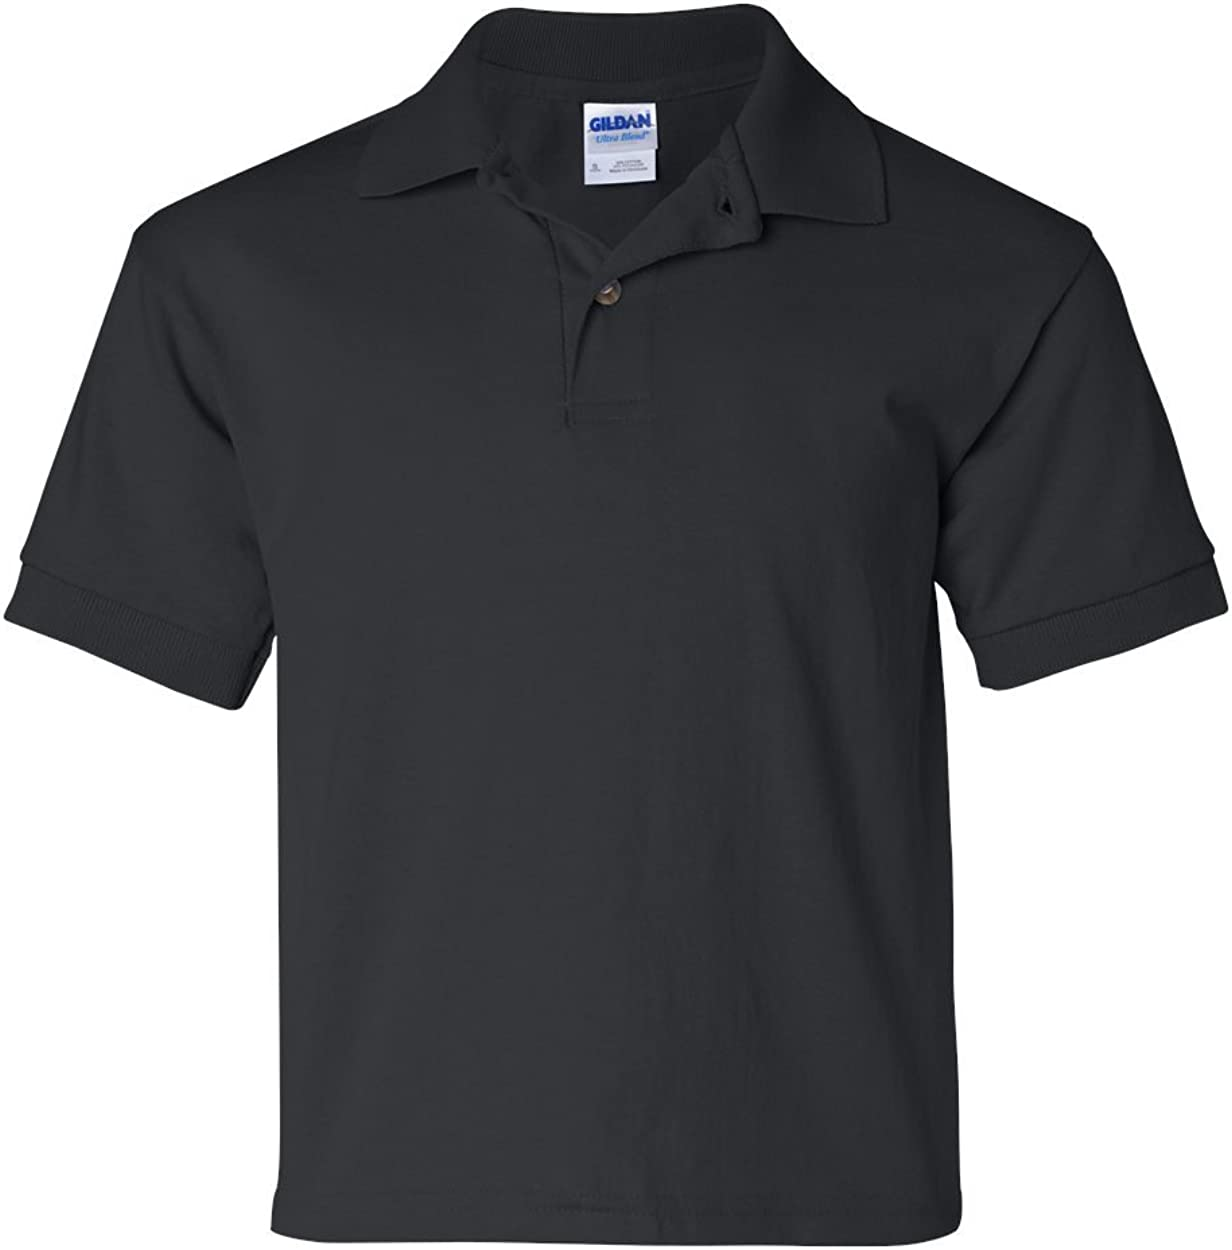 6 oz, 50/50 Jersey Polo (G880B) Black, L (Pack of 12)